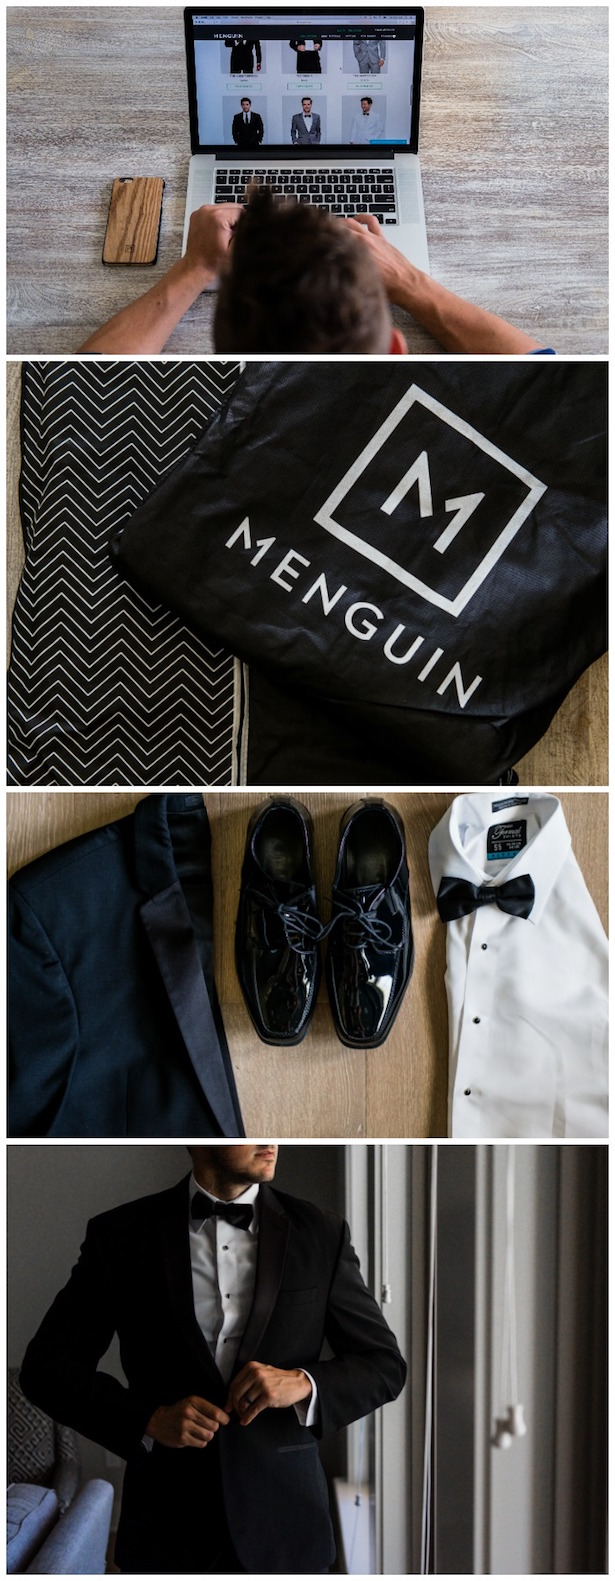 Menguin : Affordable Tux Rentals Delivered Right At Your Door